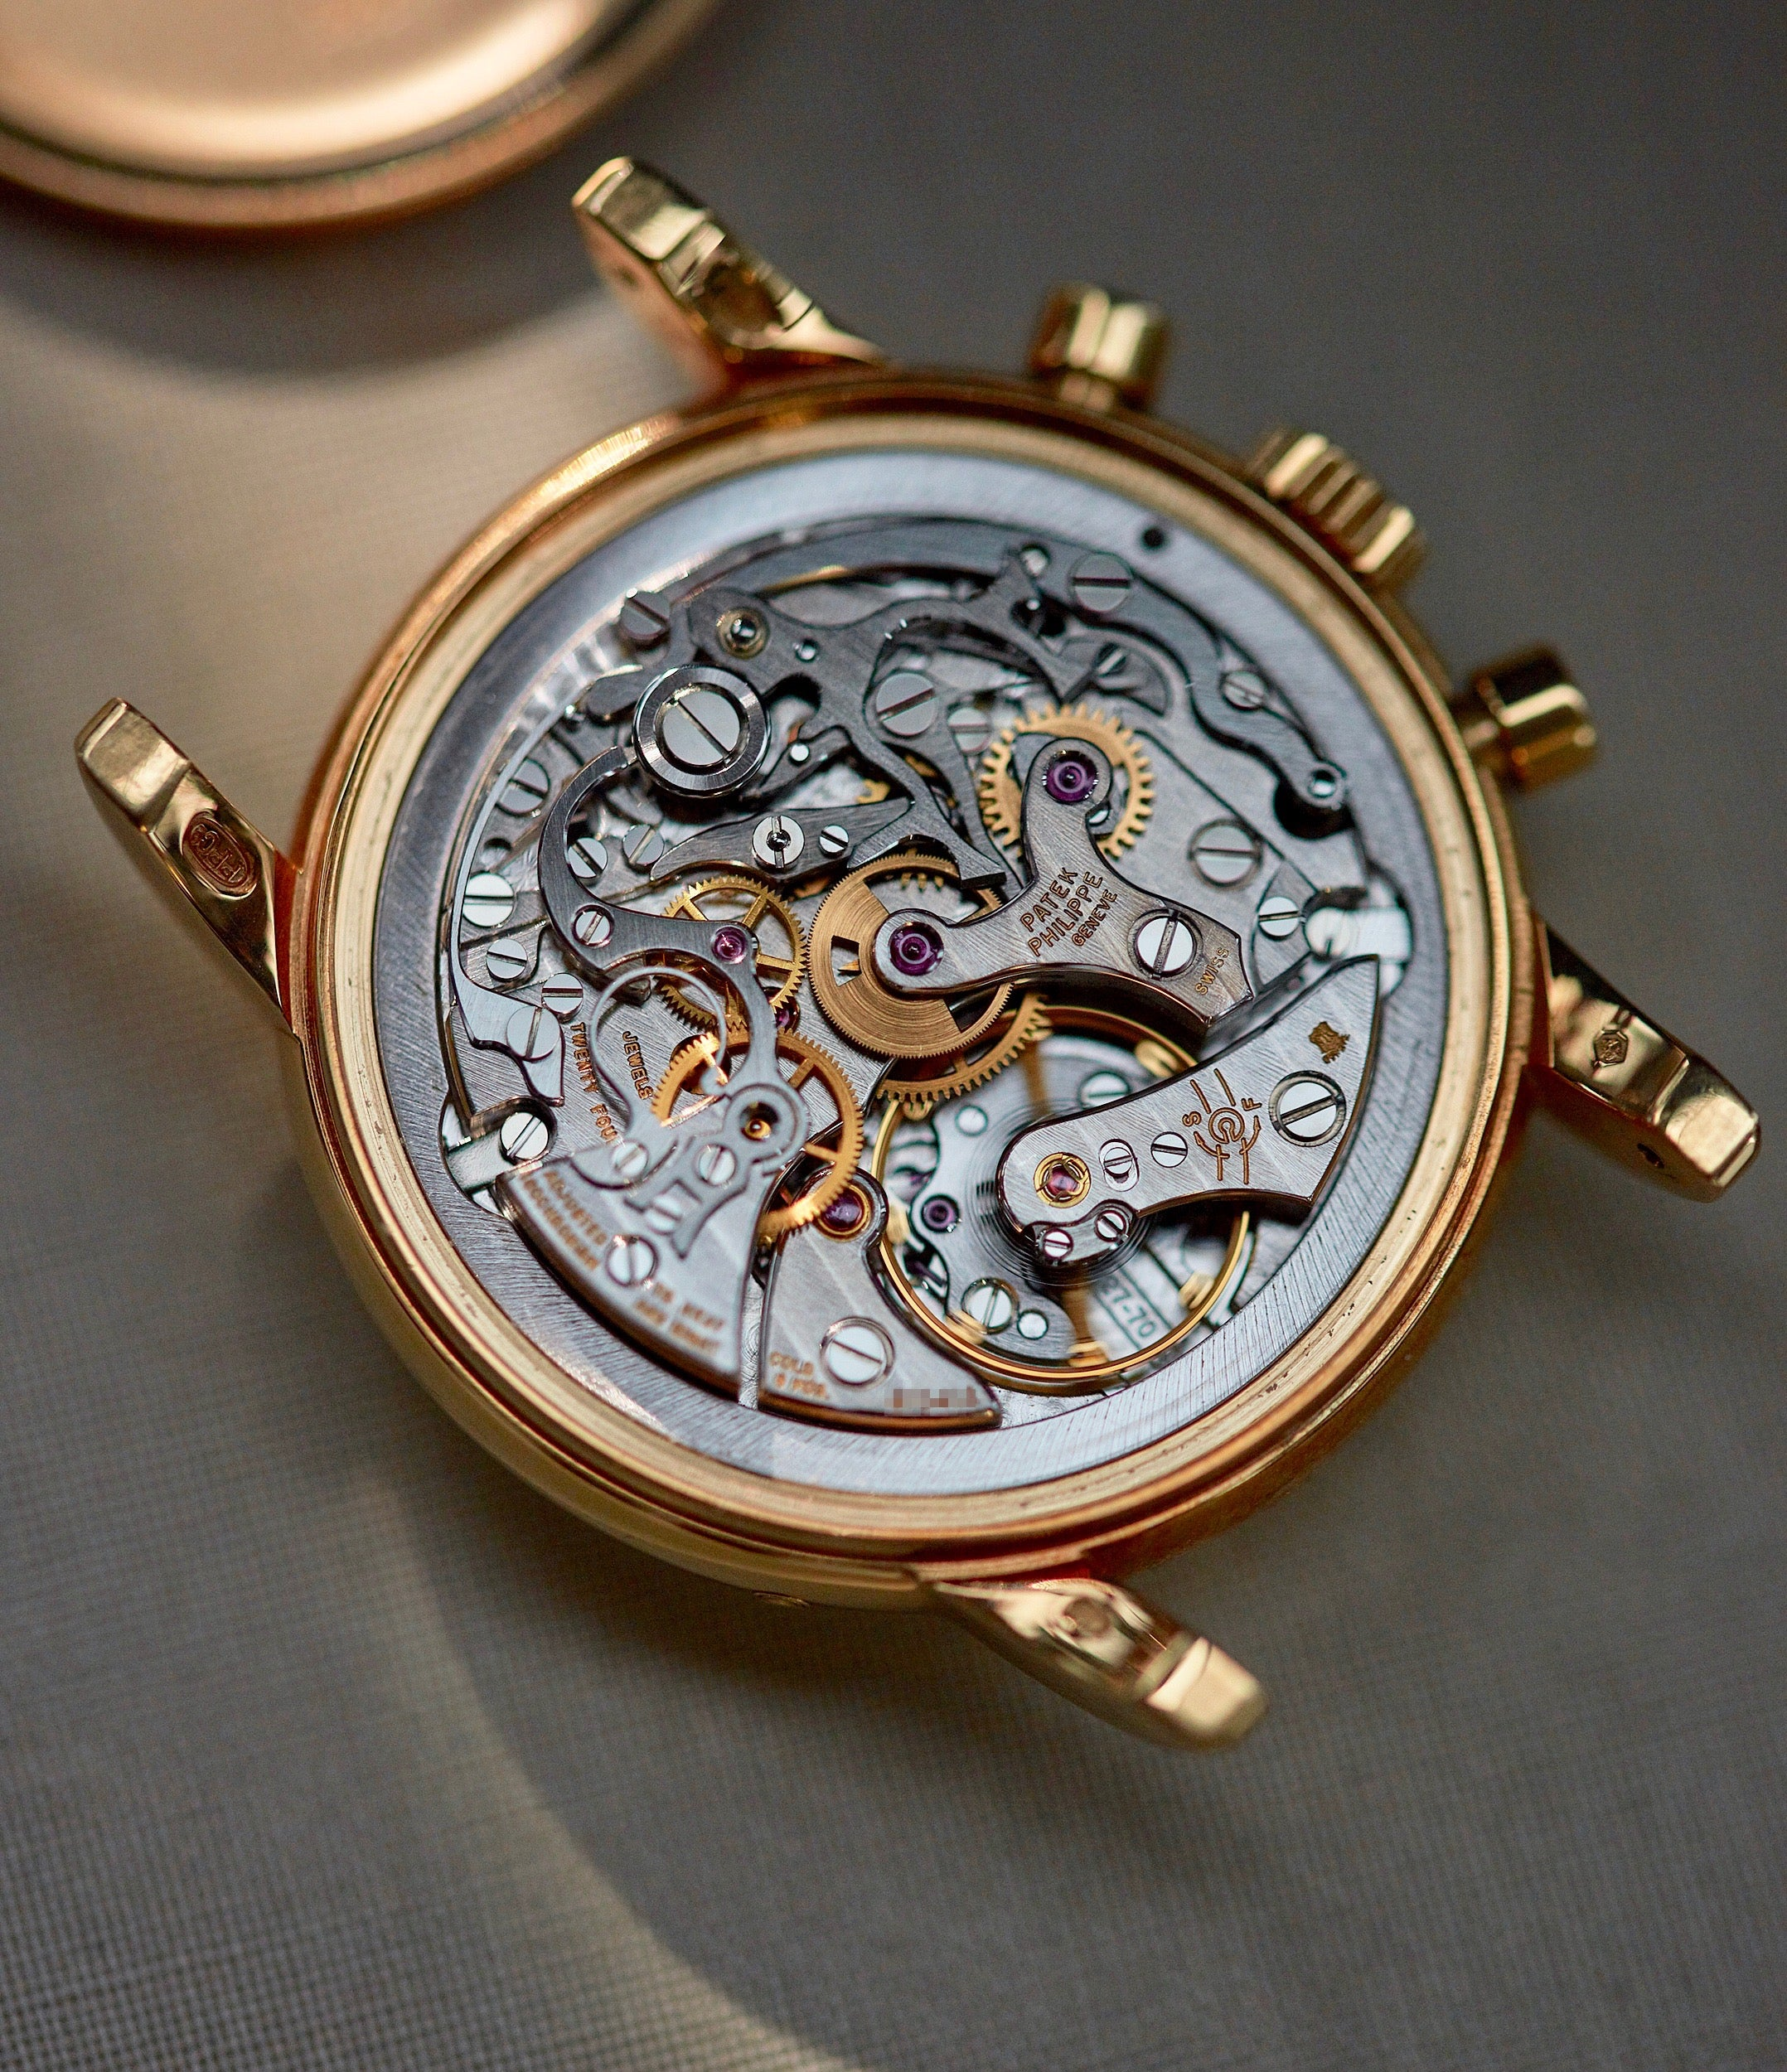 A Patek Philippe 3970 with its movement based on the Lemania 2310 ebauche for A Collected Man London